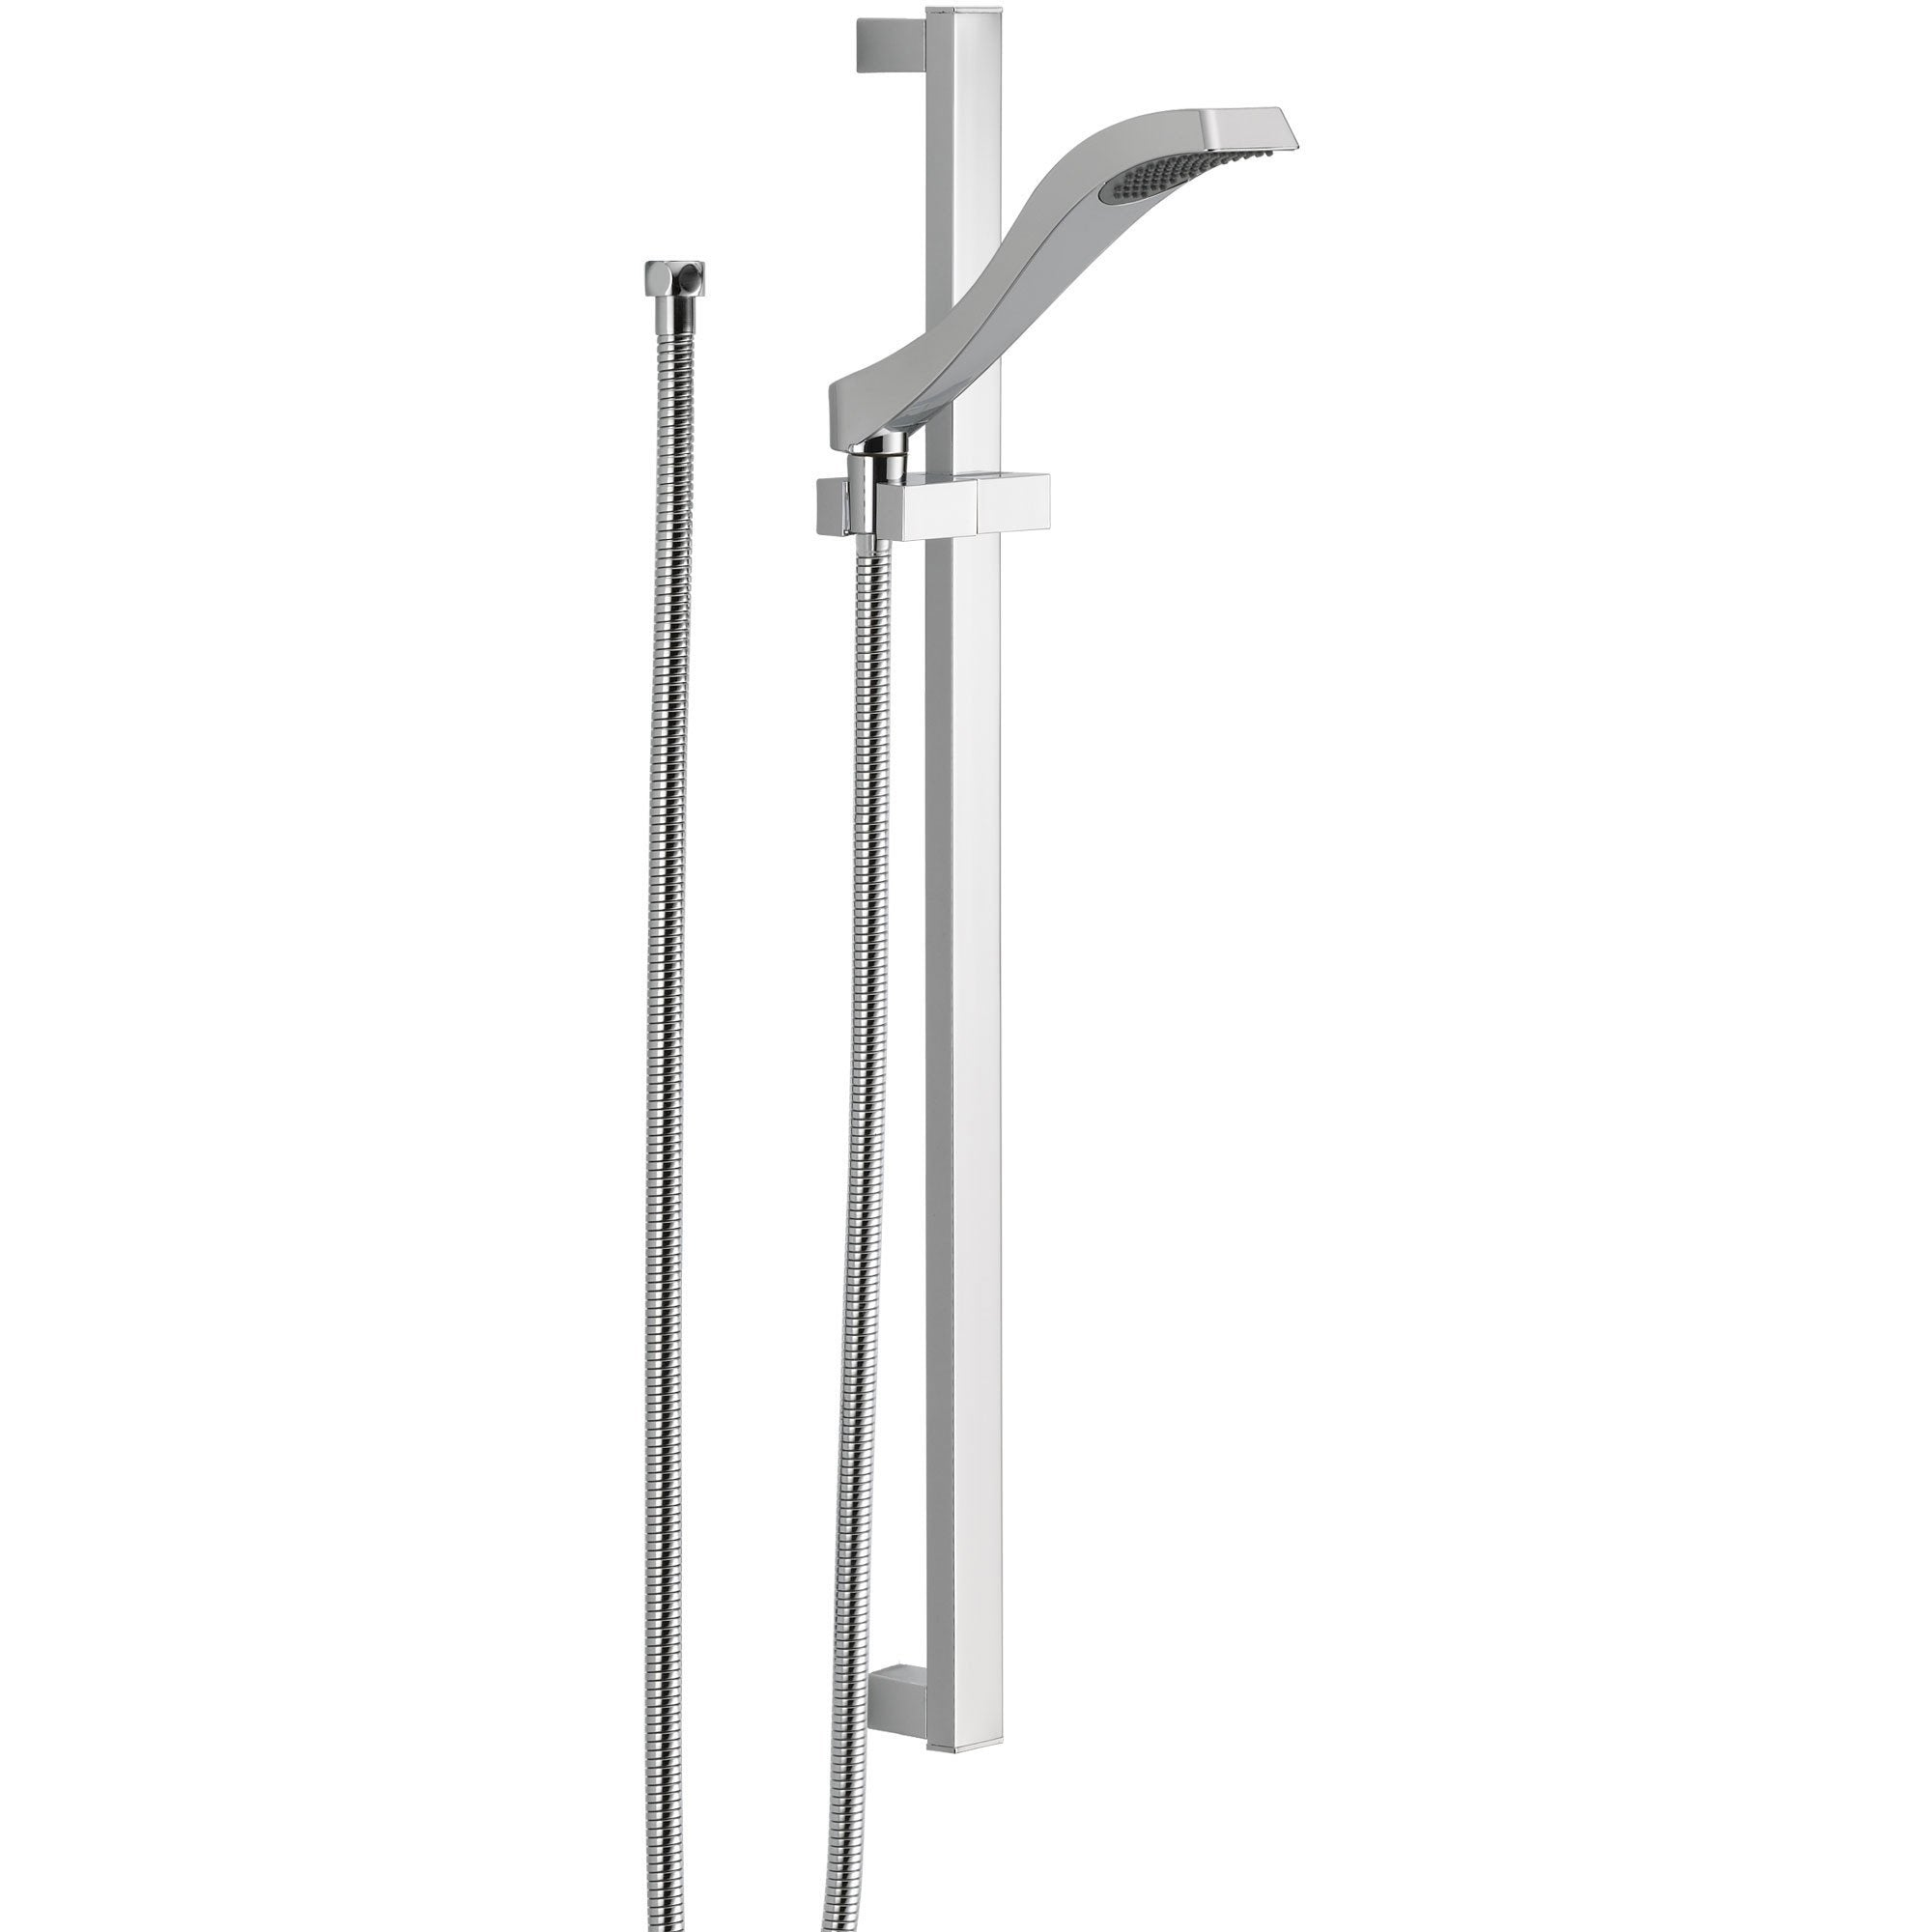 Hand Showers With Slidebar Removable Handheld Shower On